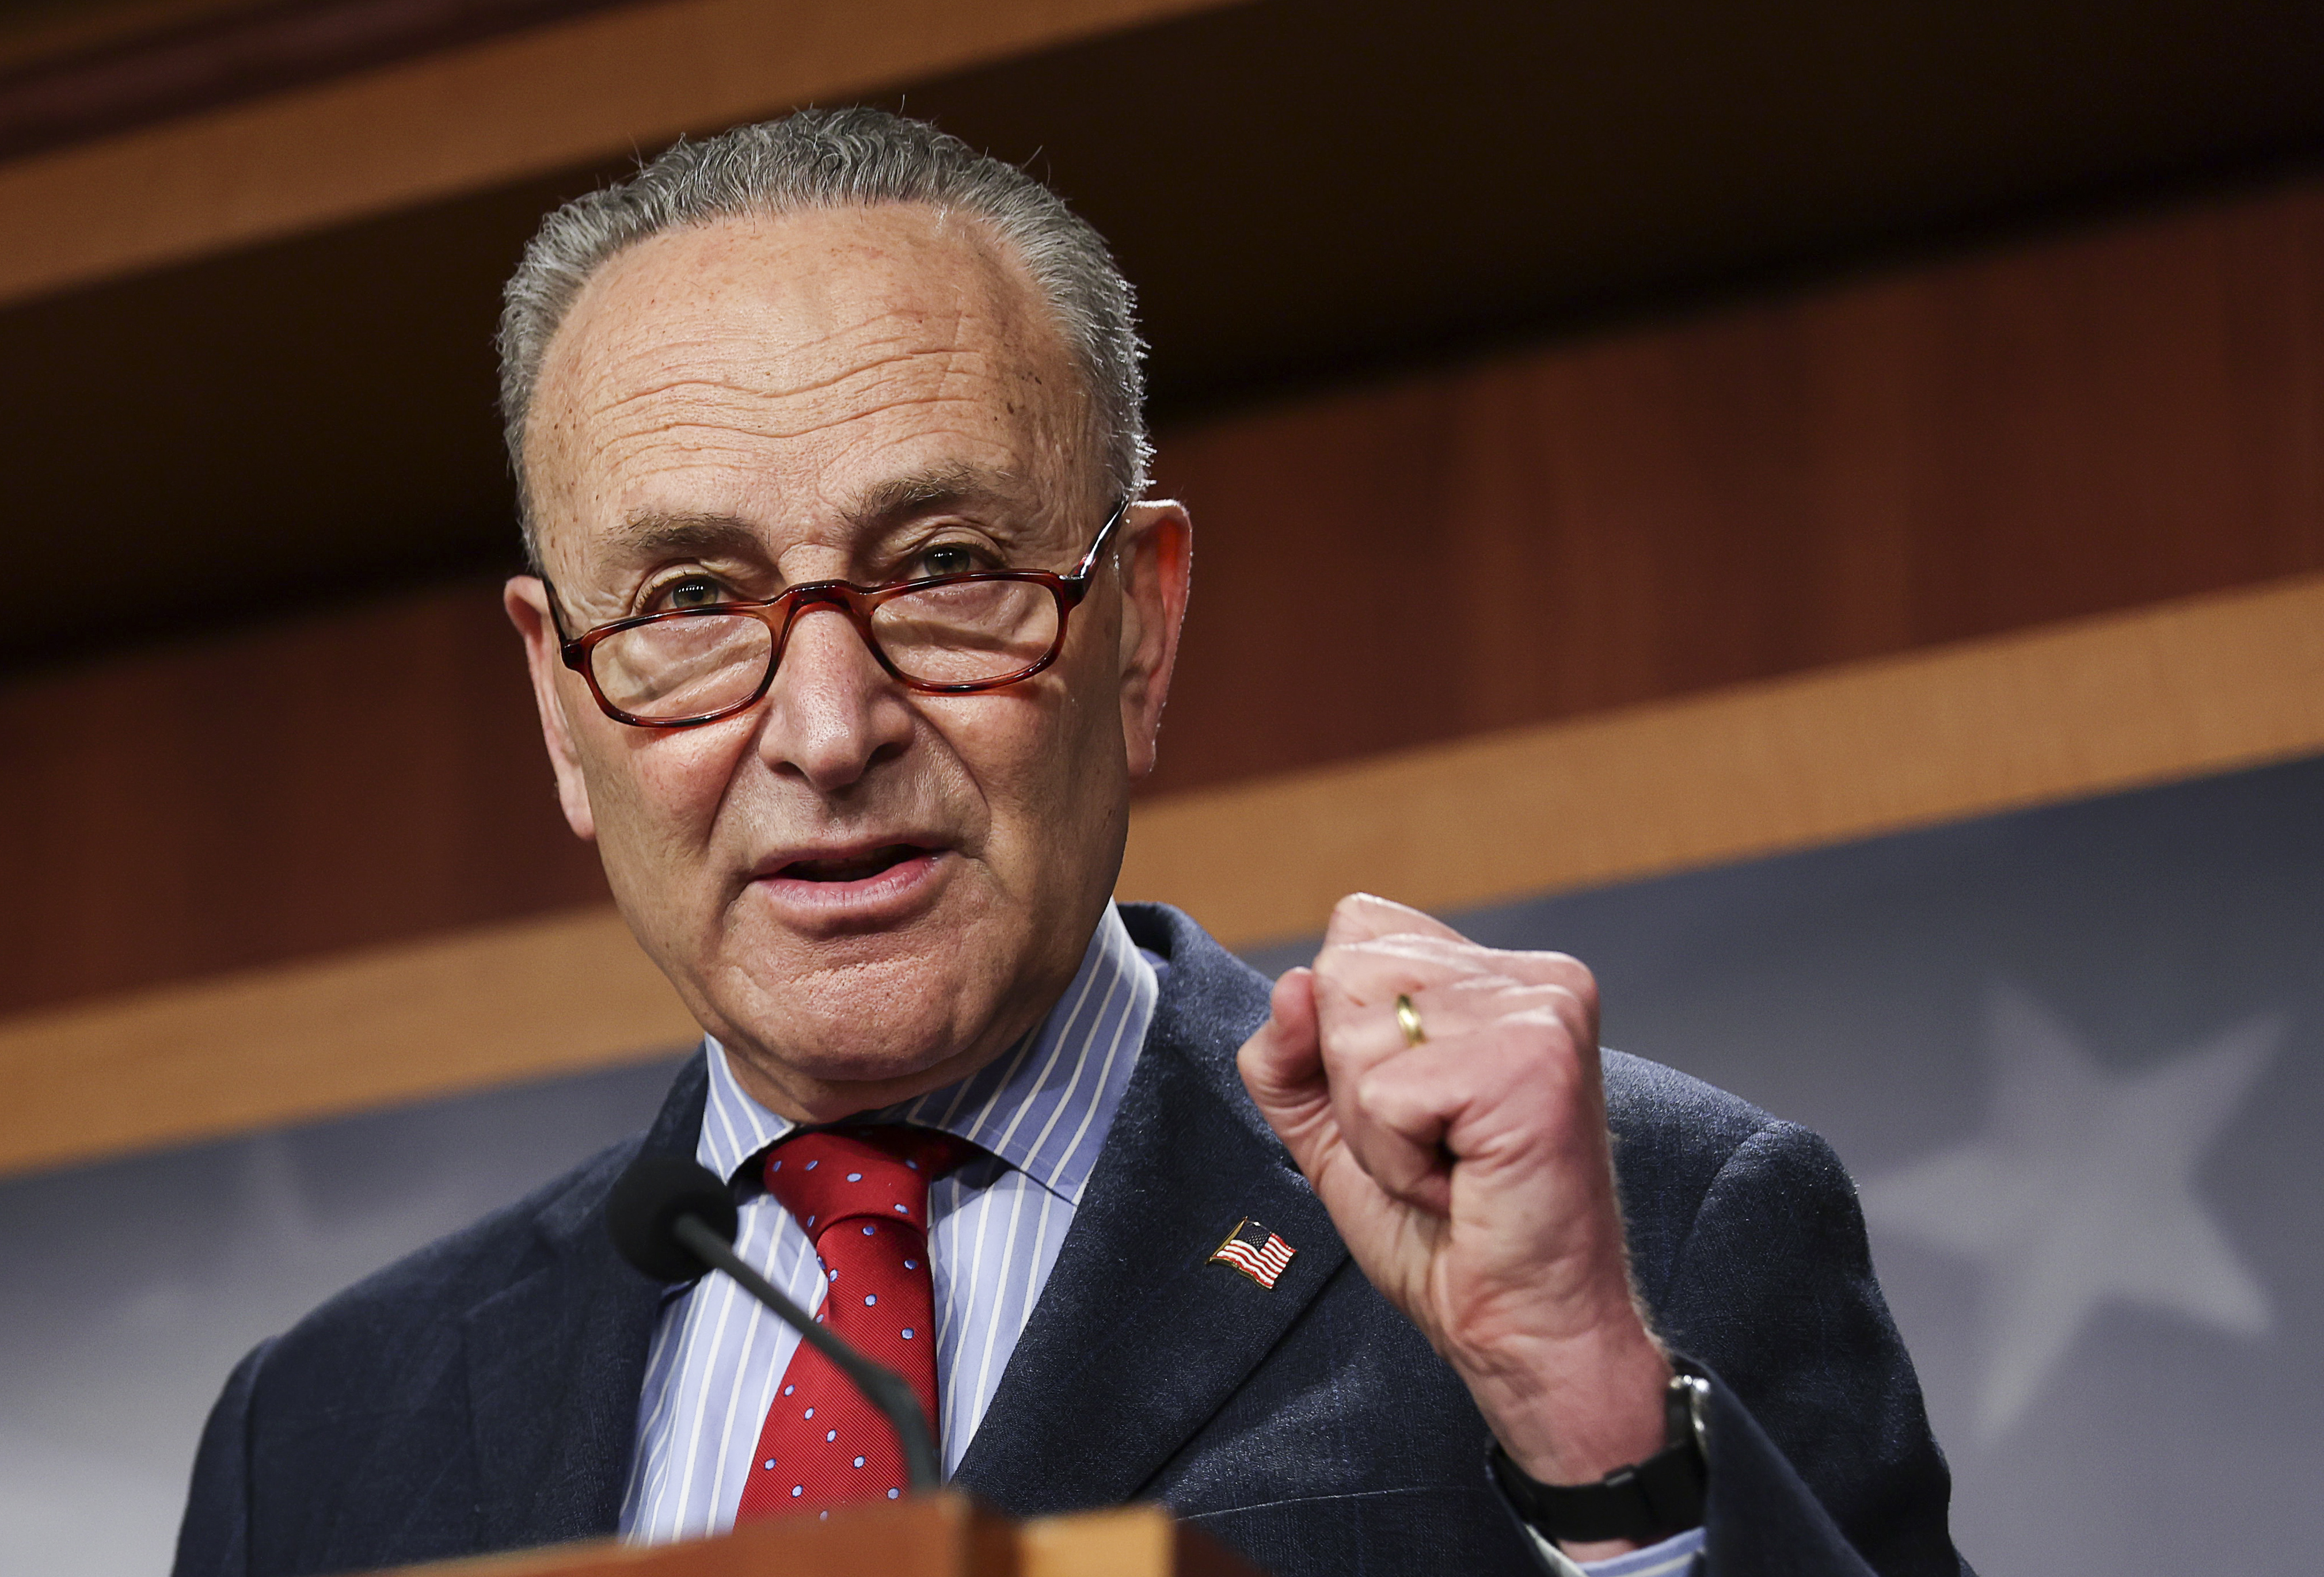 Majority Leader Schumer Holds Press Conference On Senate Business